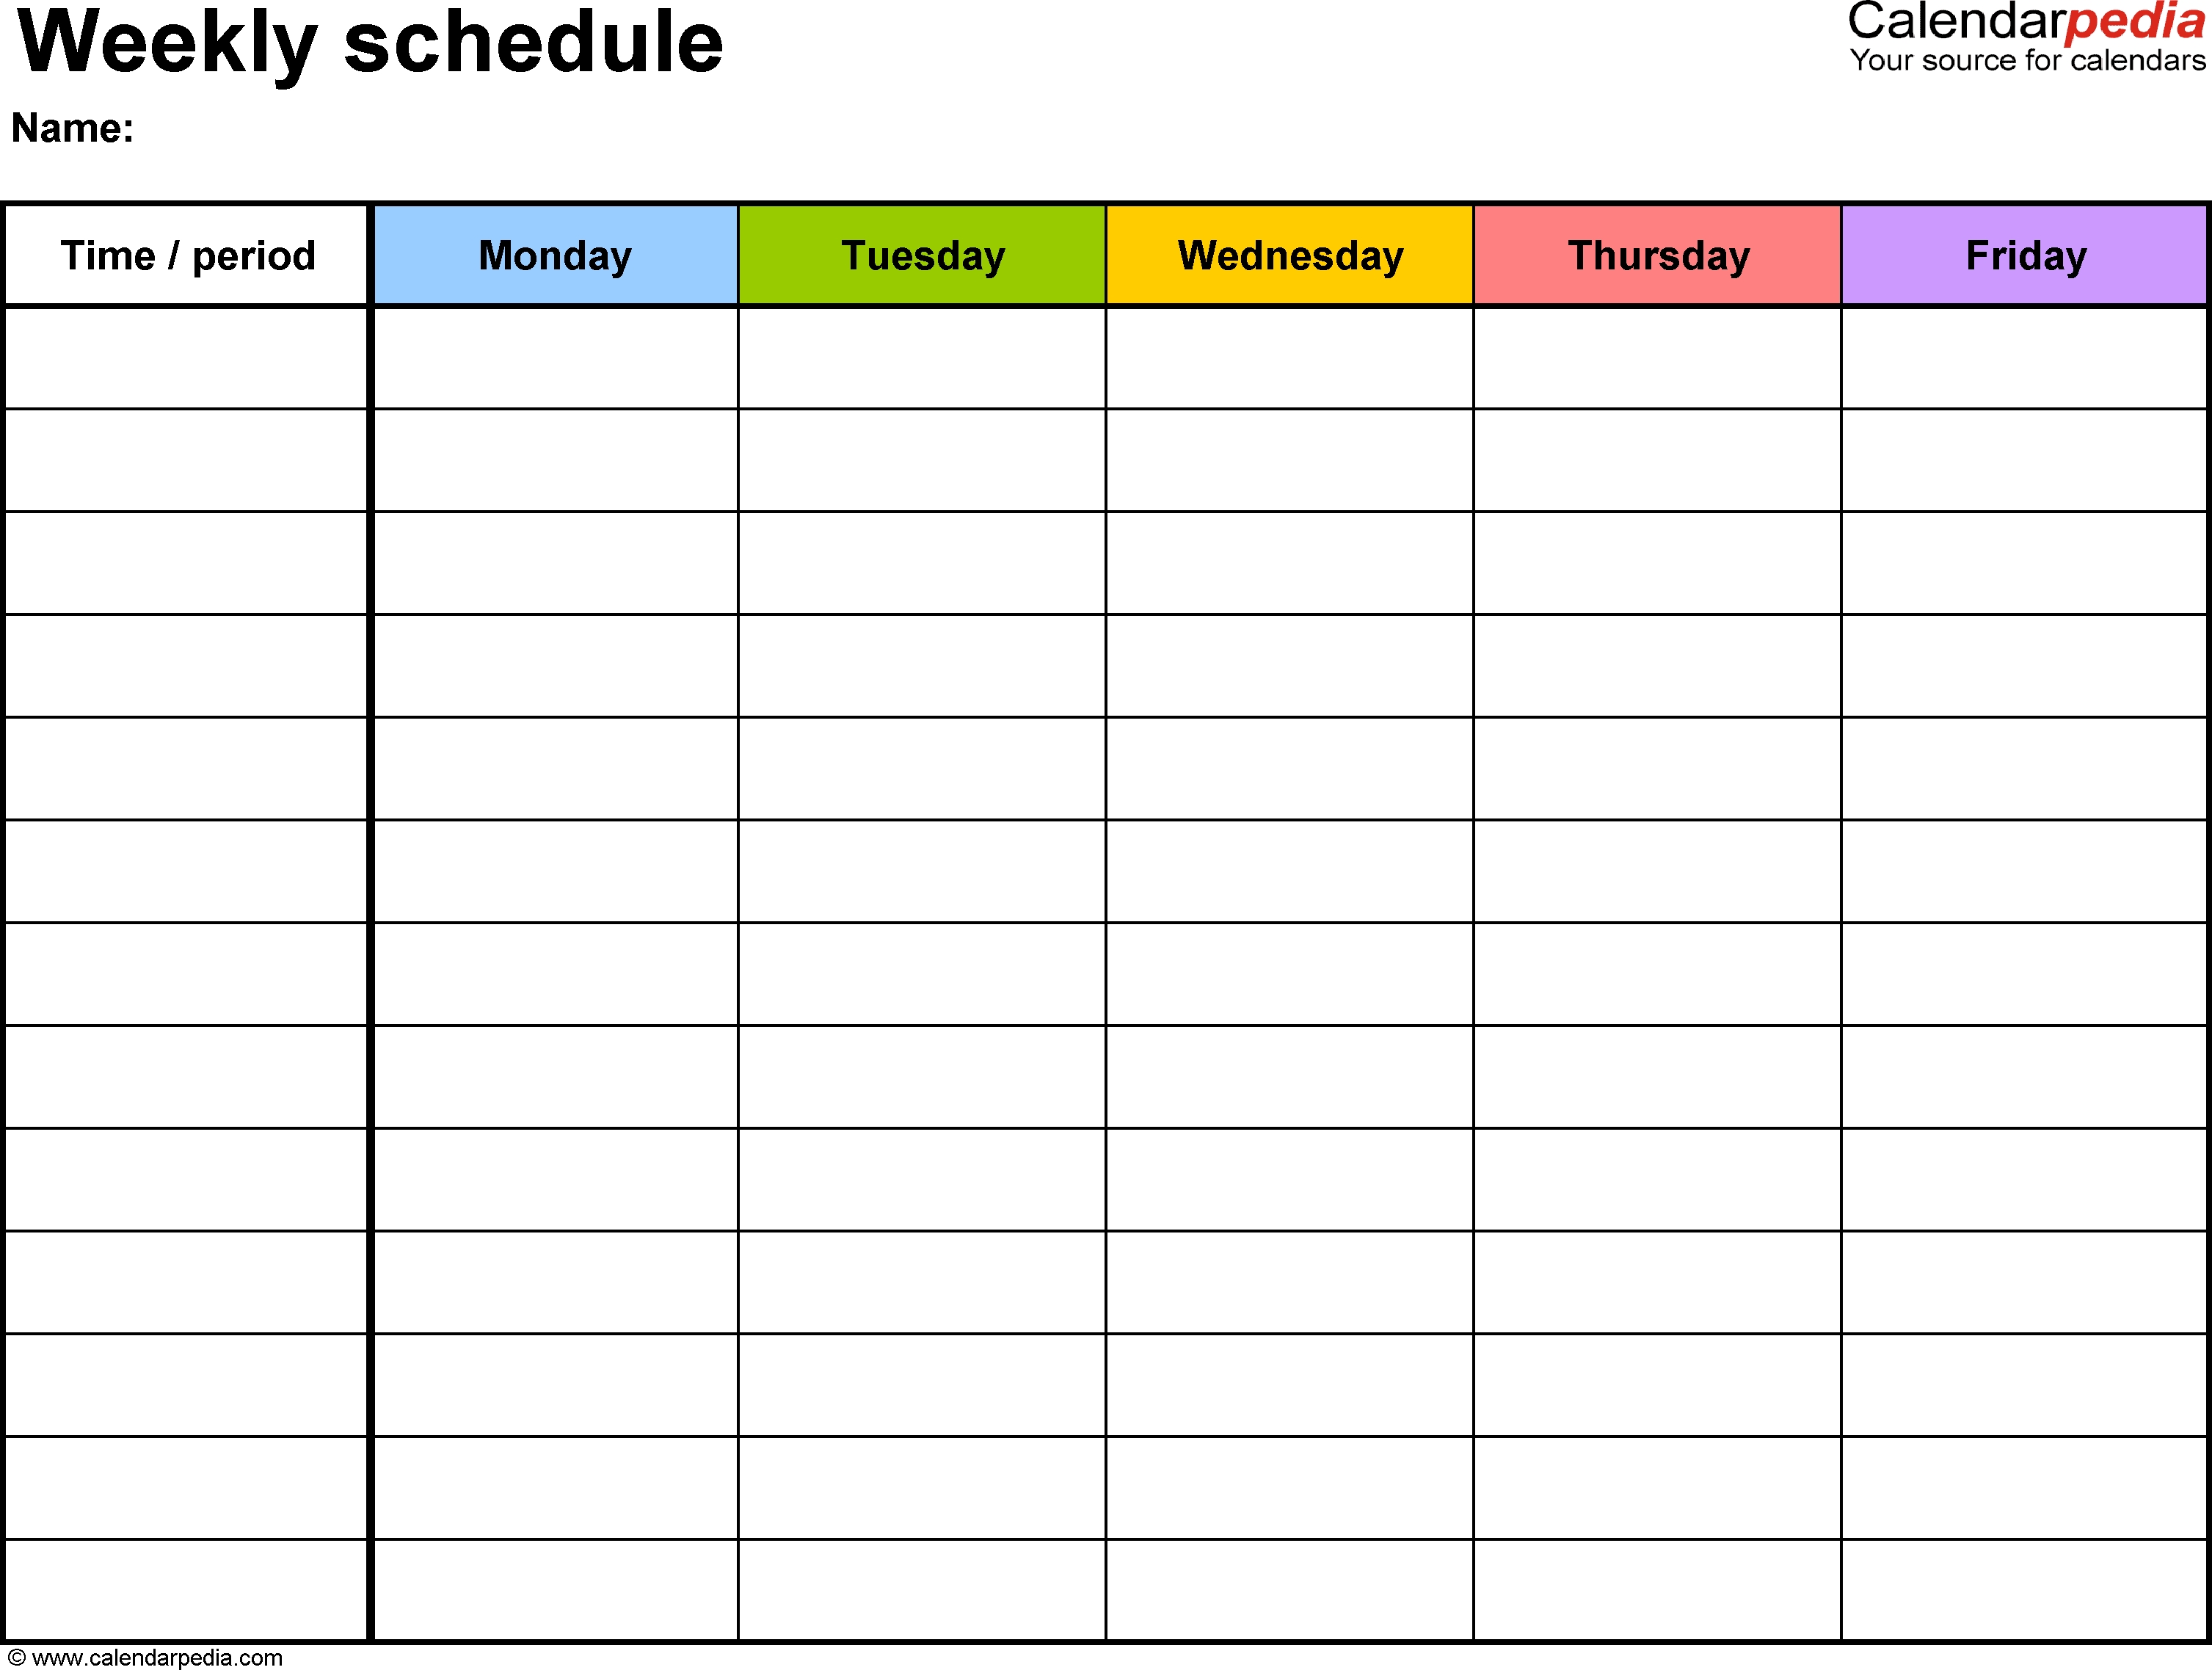 Free Weekly Schedule Templates For Excel - 18 Templates inside Free Printable Weekly Planner Templates